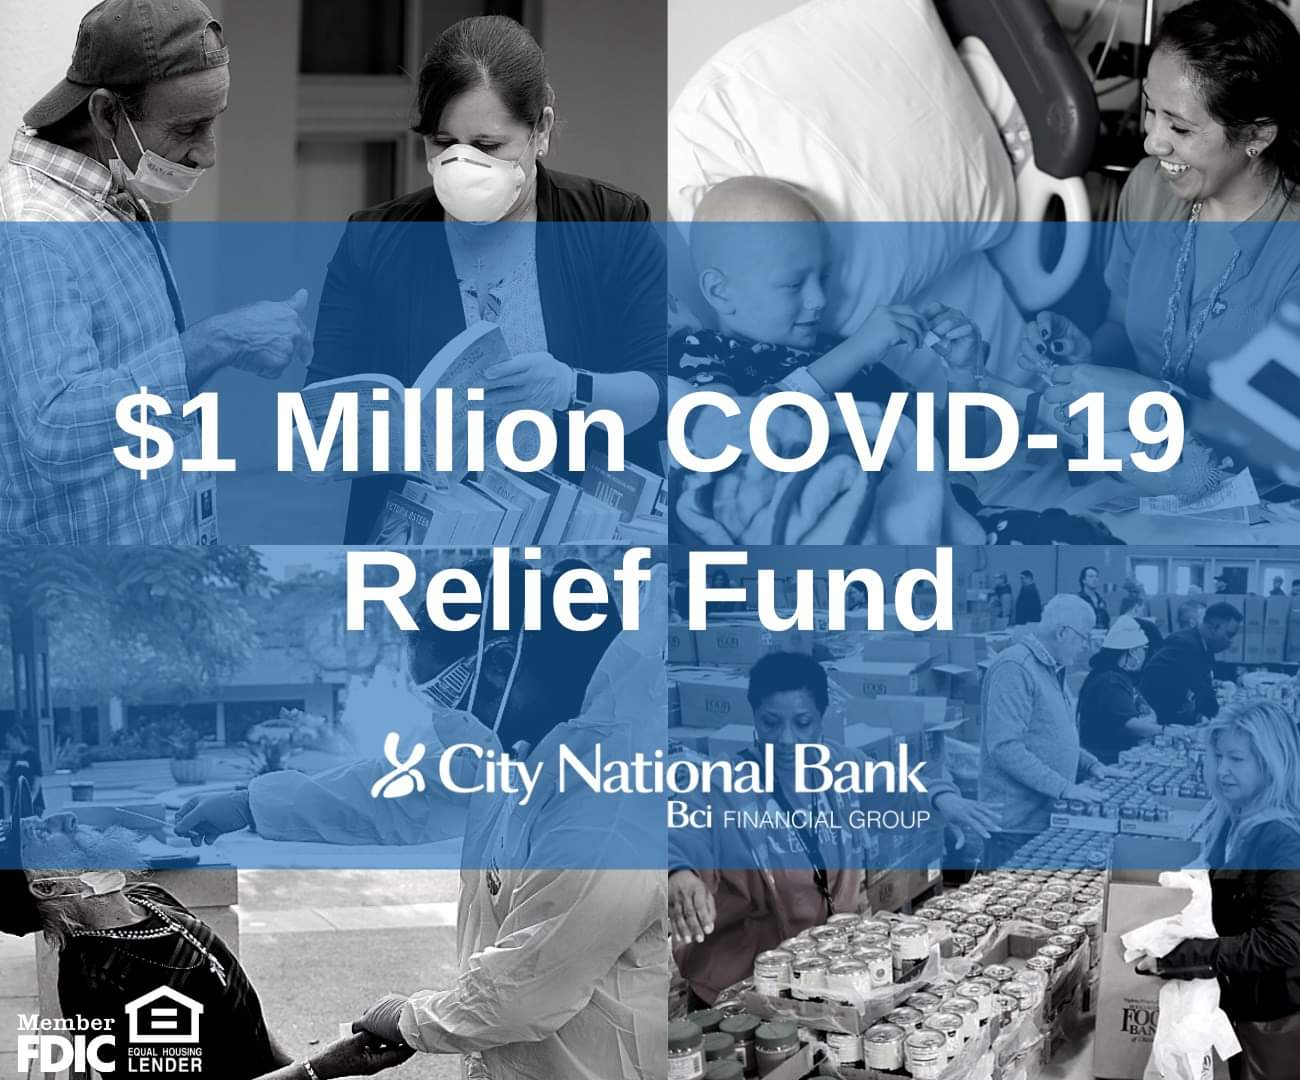 City National Bank Commits $1 Million To Florida Nonprofits Supporting Covid-19 Relief Efforts